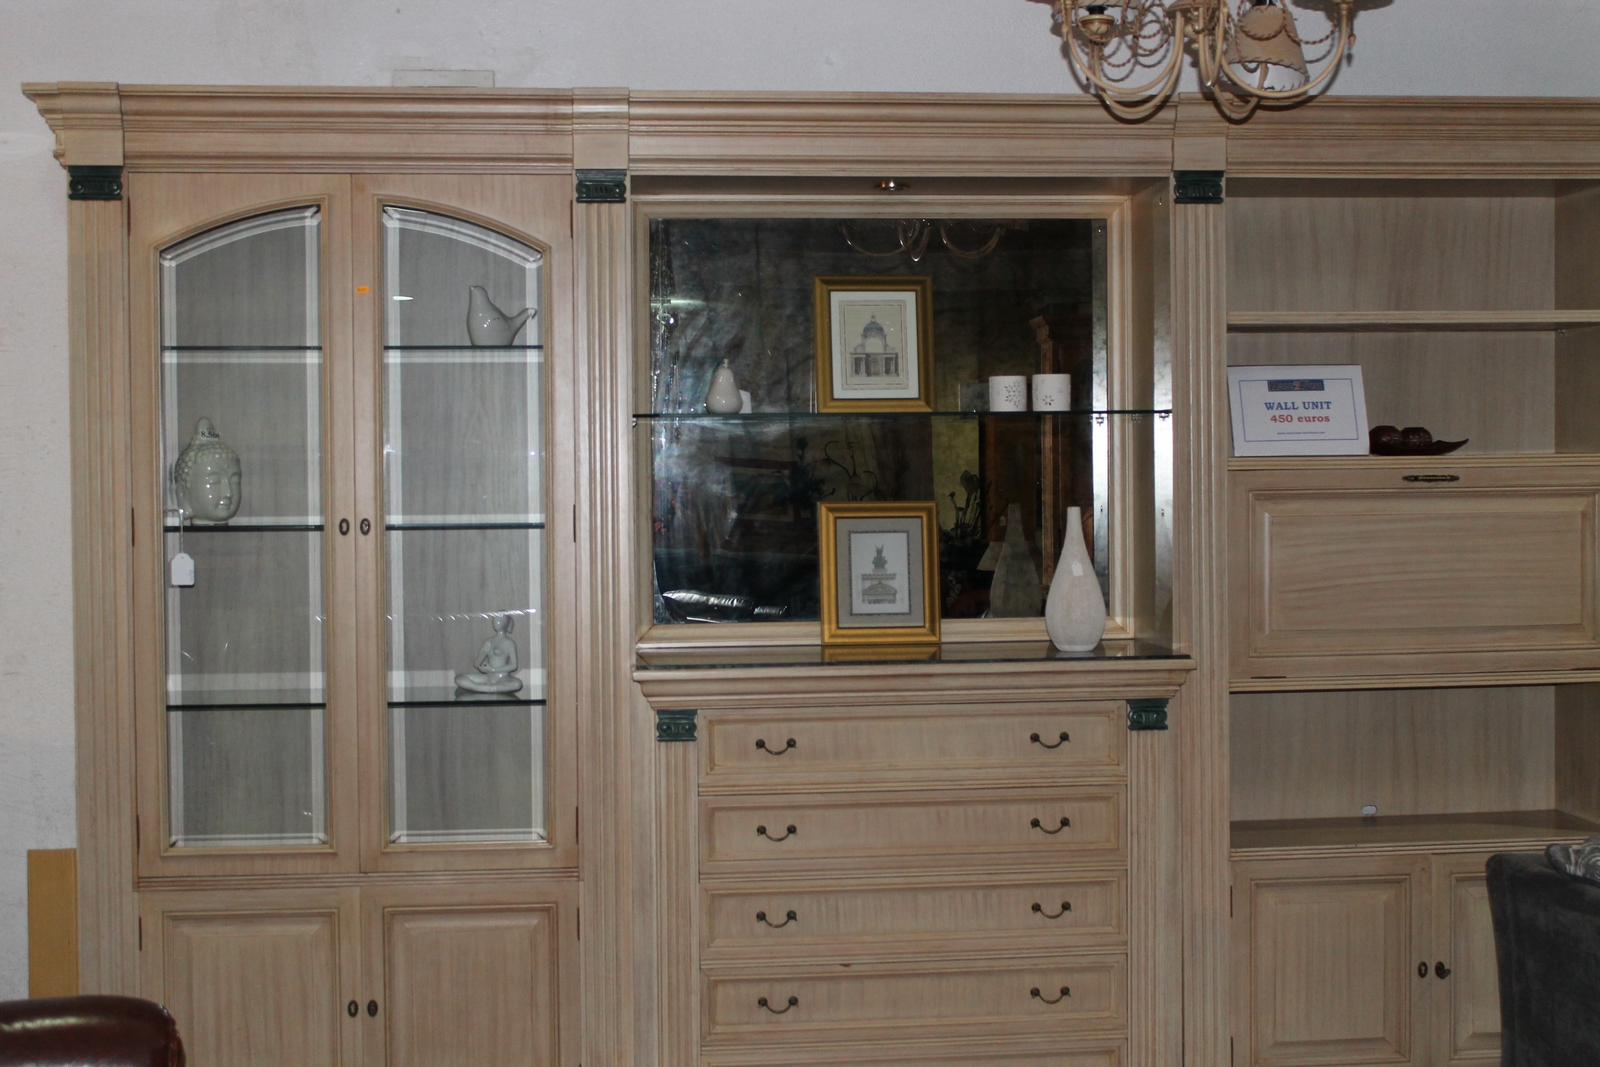 Dining Room Wall Unit Glamorous New2You Furniture  Second Hand Wall Units For The Clearance Items Inspiration